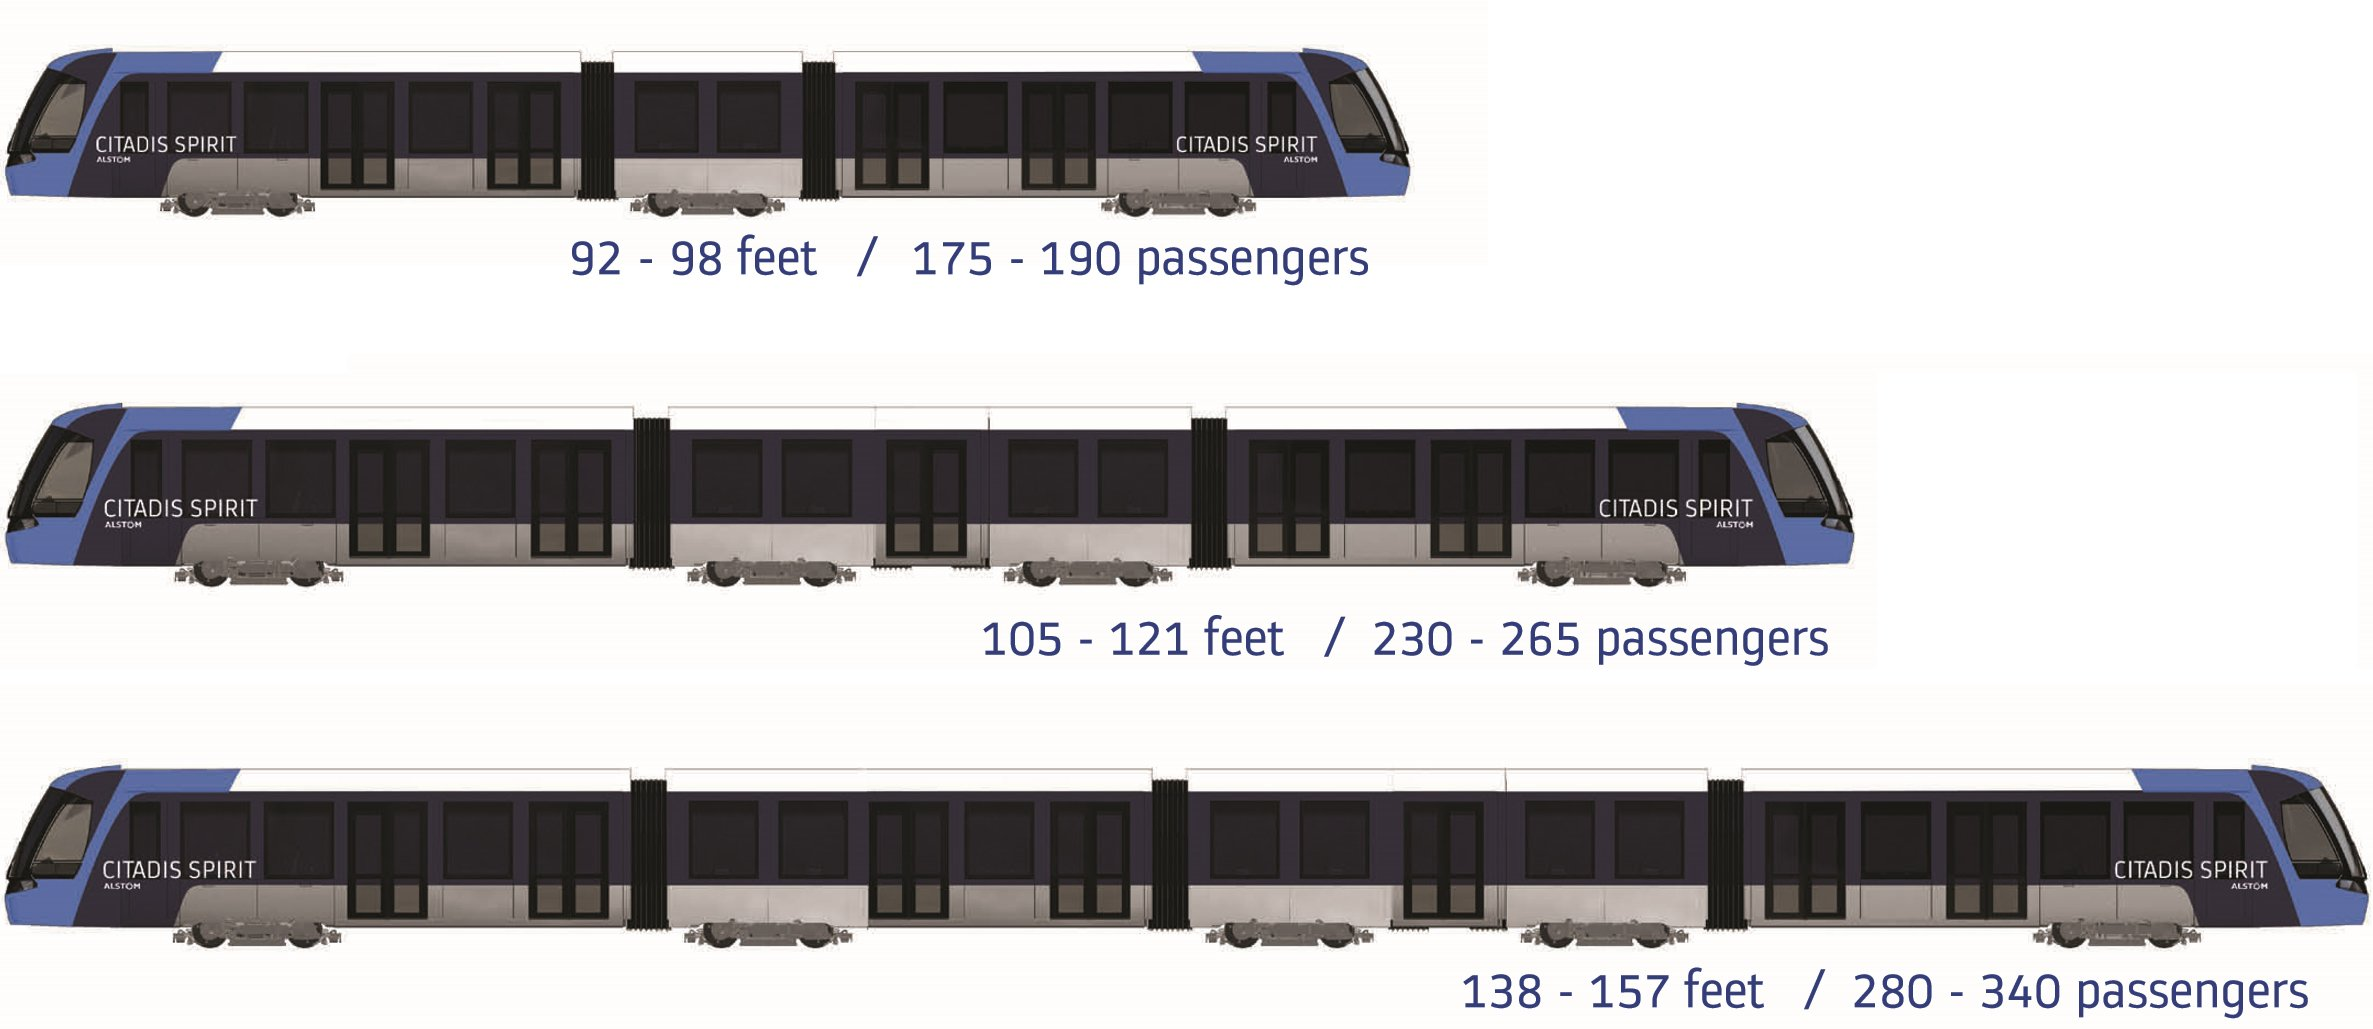 Alstom livery configurations offereing different passenger capacities.